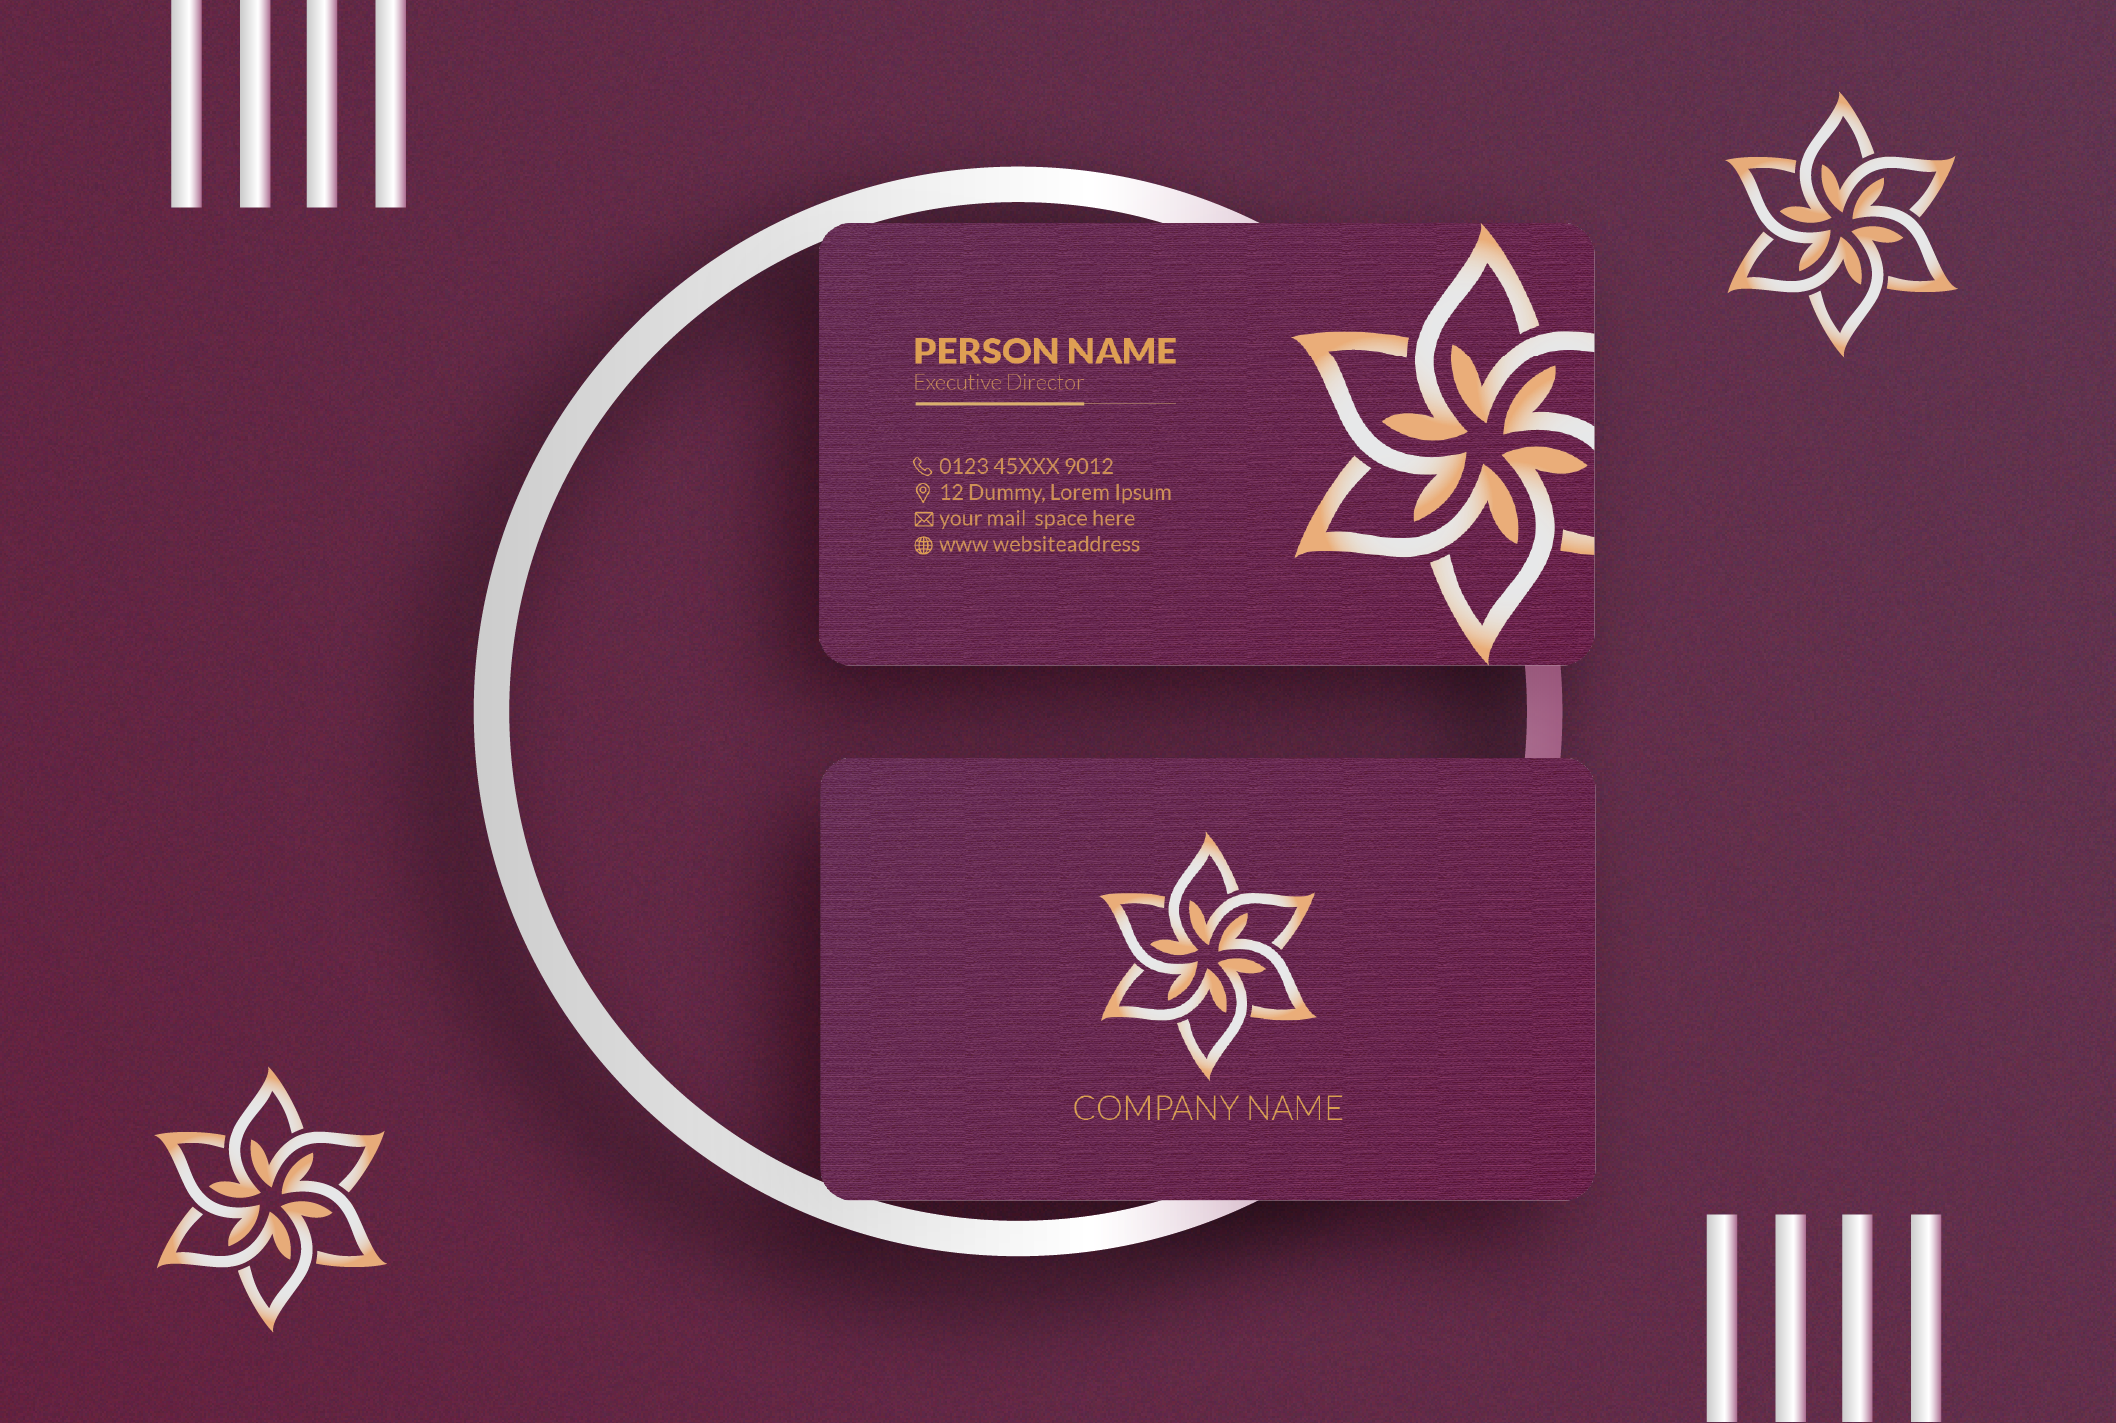 I will design professional and premium quality business card for you within 24 hours